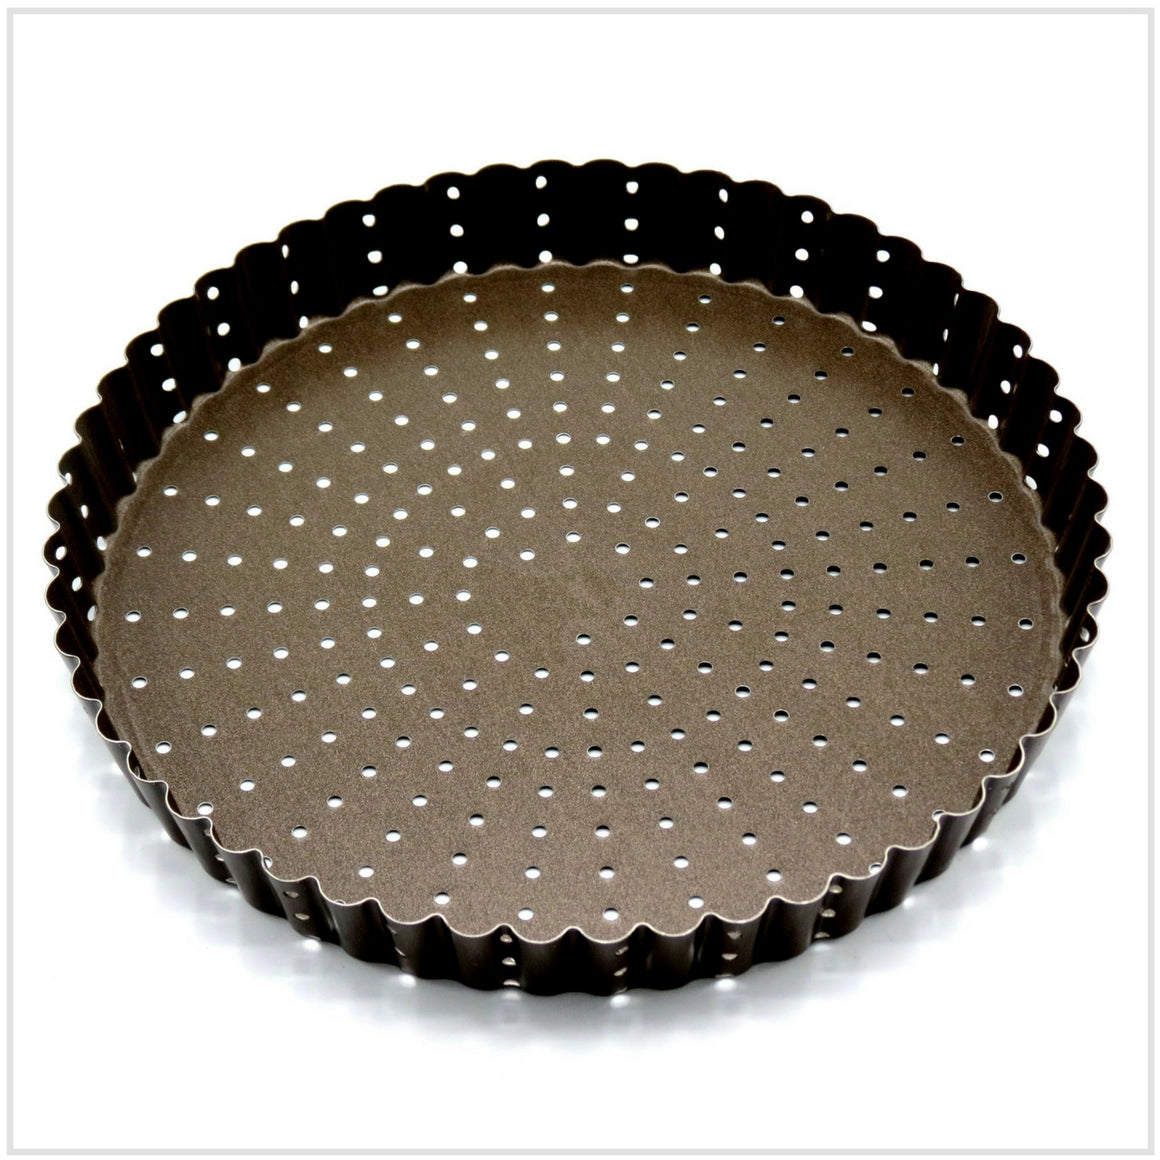 Round Fluted Perforated Tart/Quiche Pan 22cm